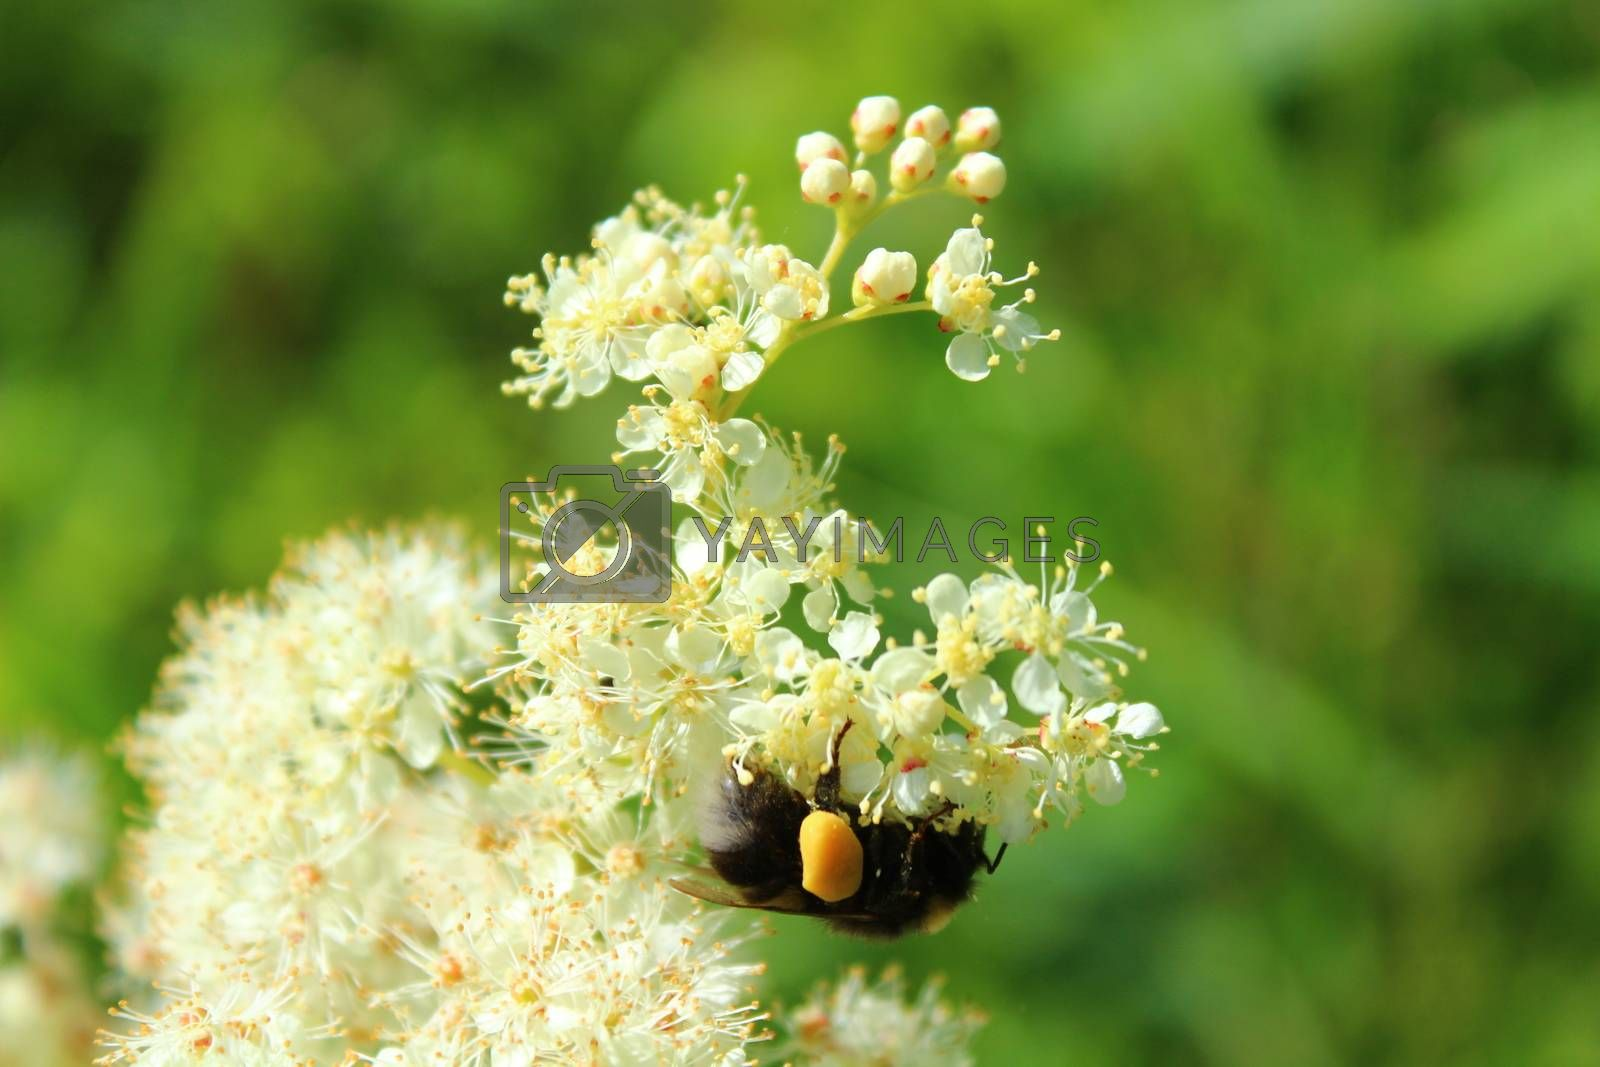 Royalty free image of blossoming meadowsweet with a bumblebee in the meadow by martina_unbehauen